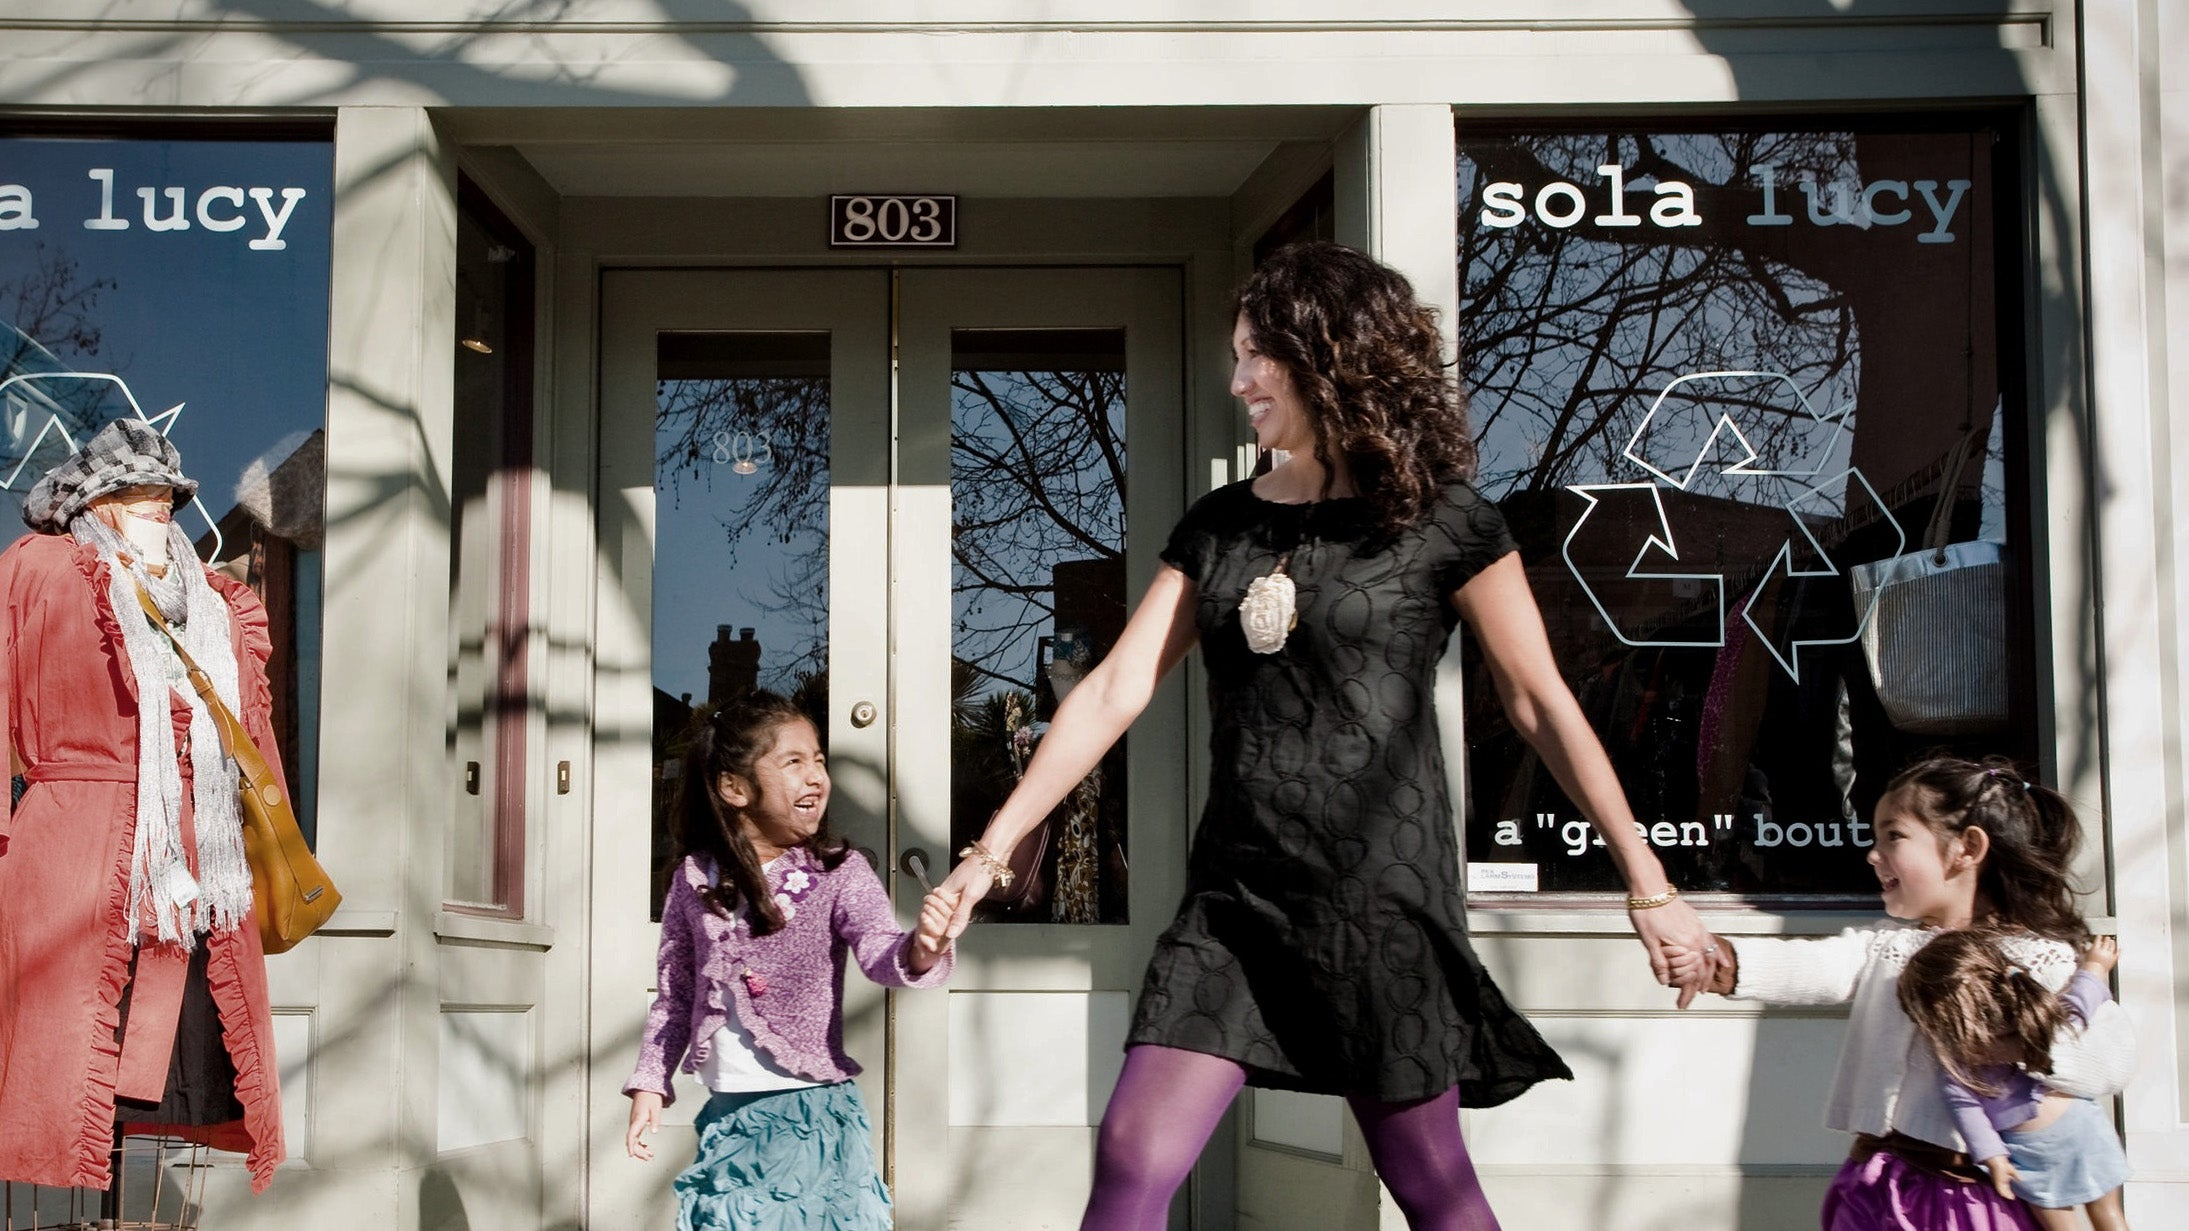 sola-lucy-ross-berkeley-oakland-consignment